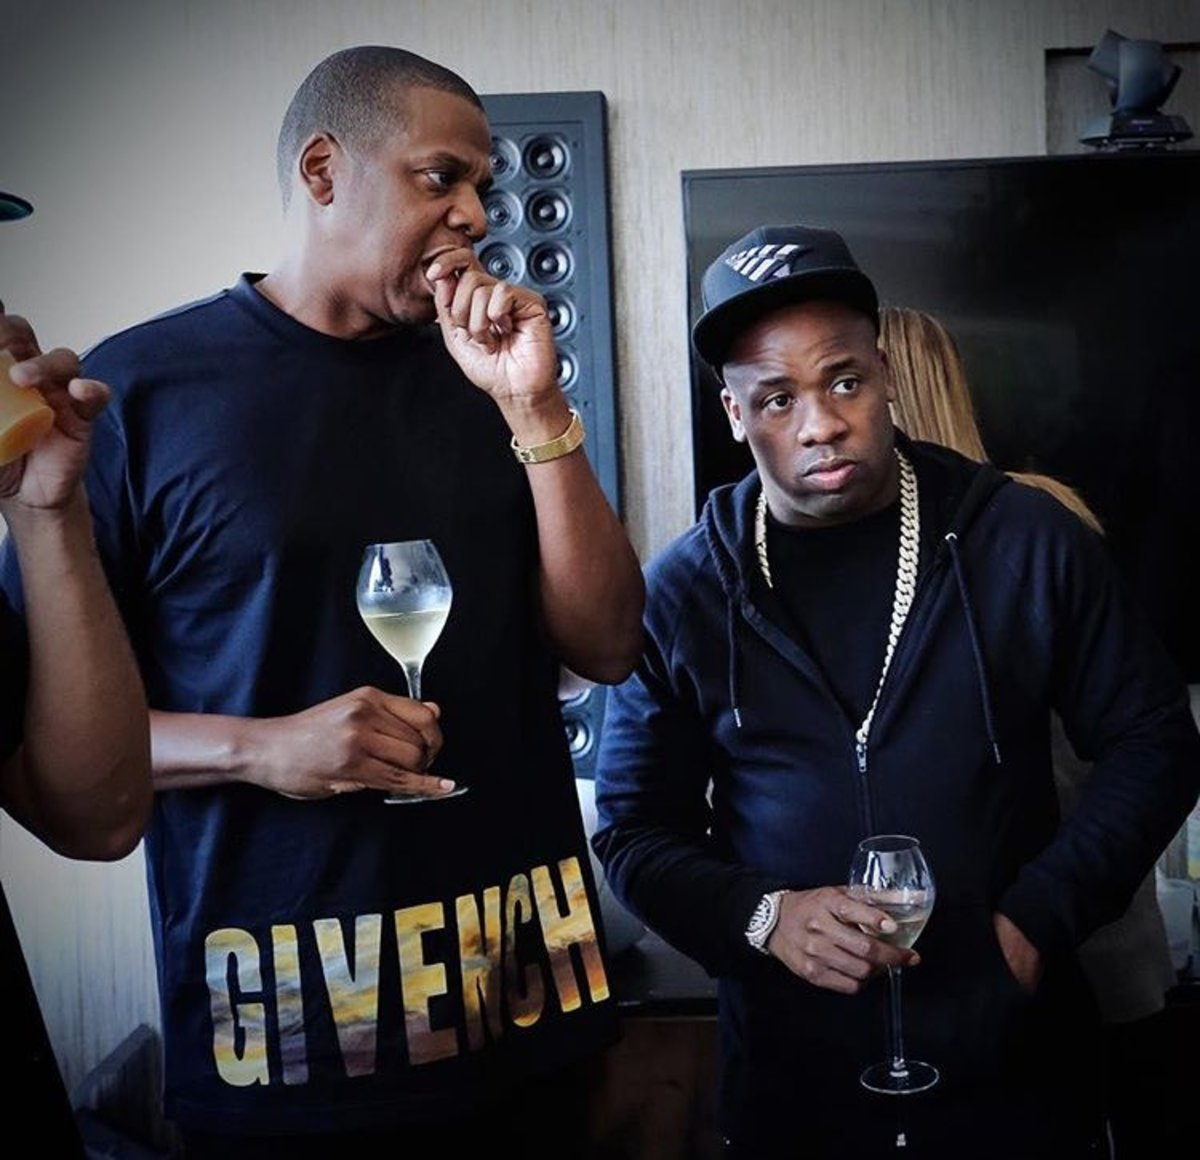 Left: Jay Z, right: Yo Gotti